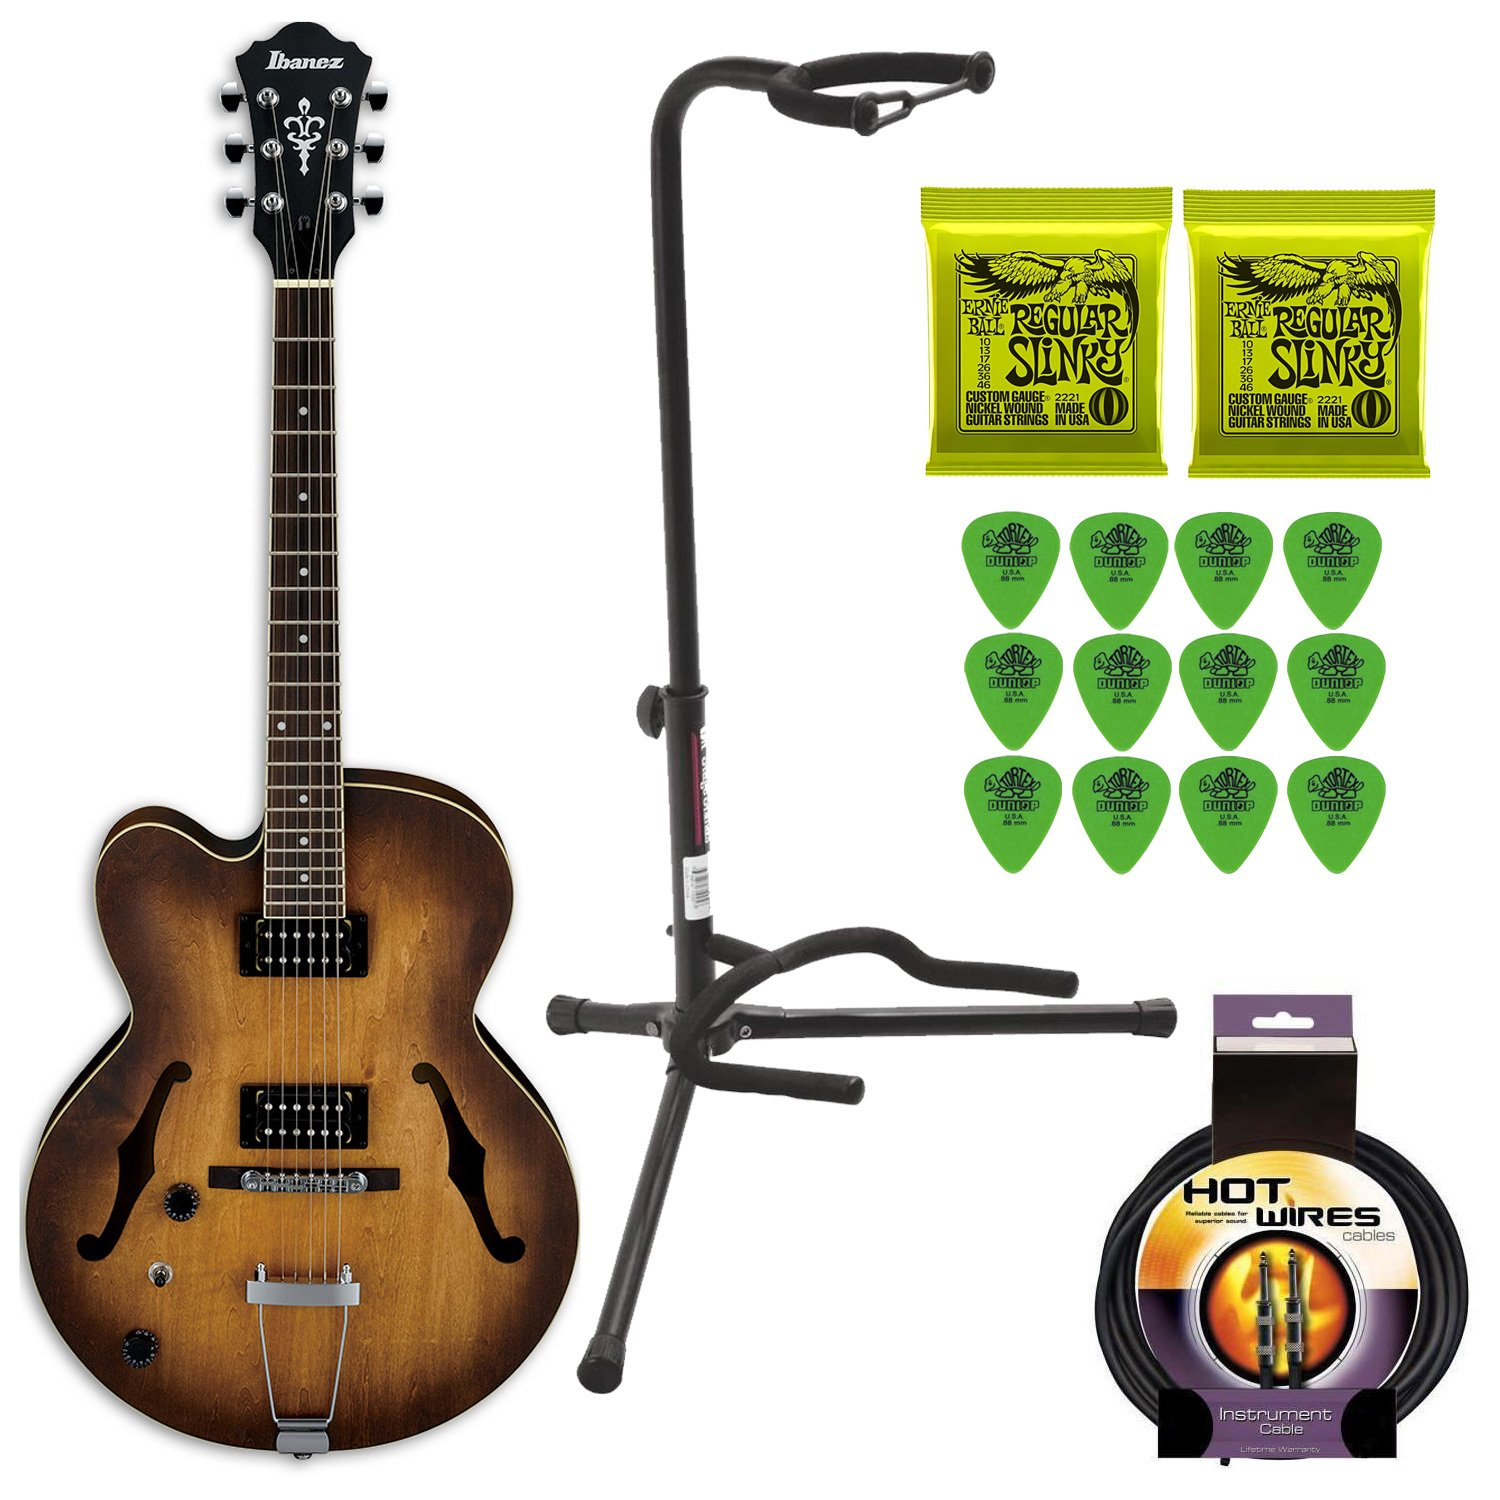 Amazon.com: Ibanez AF55 Hollow Body Left Handed Electric Guitar Deluxe  Bundle Includes Extra Strings, Guitar Stand, 10 Foot Cable and Guitar Pics:  Musical ...